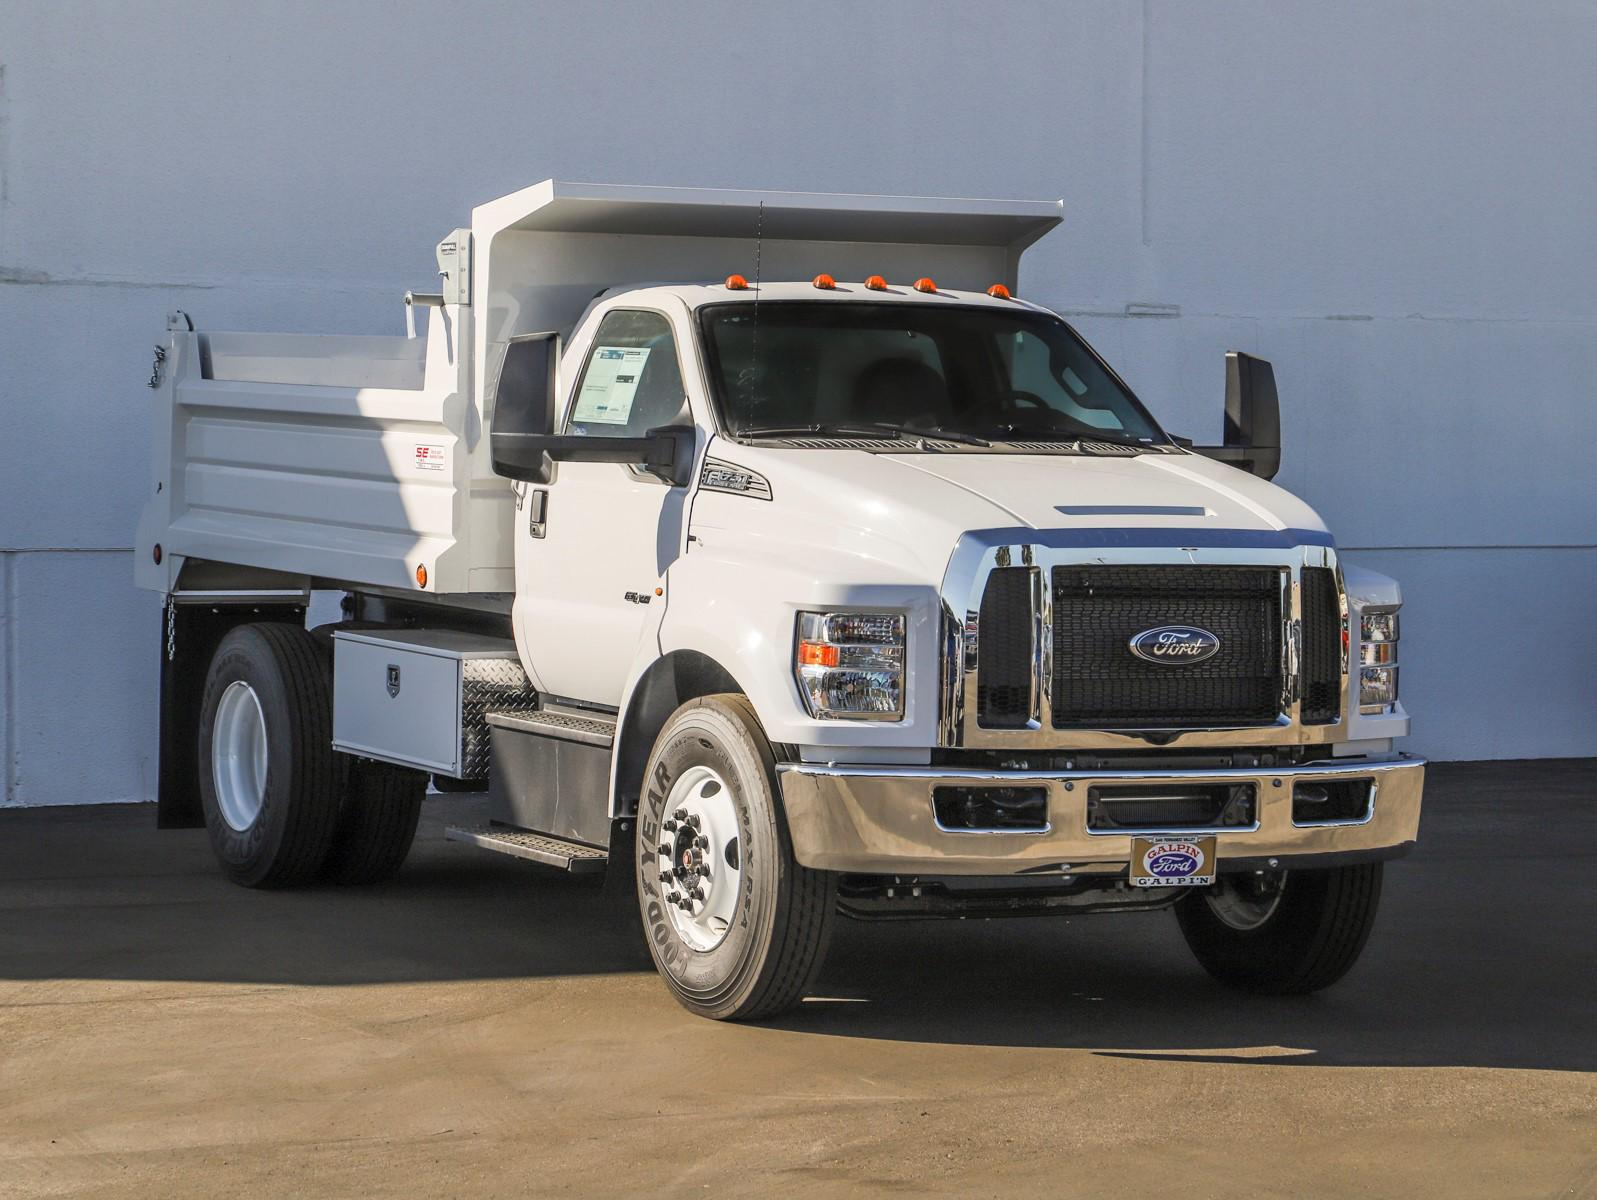 2021 Ford F-650 Regular Cab DRW 4x2, Scelzi Dump Body #E210034 - photo 1